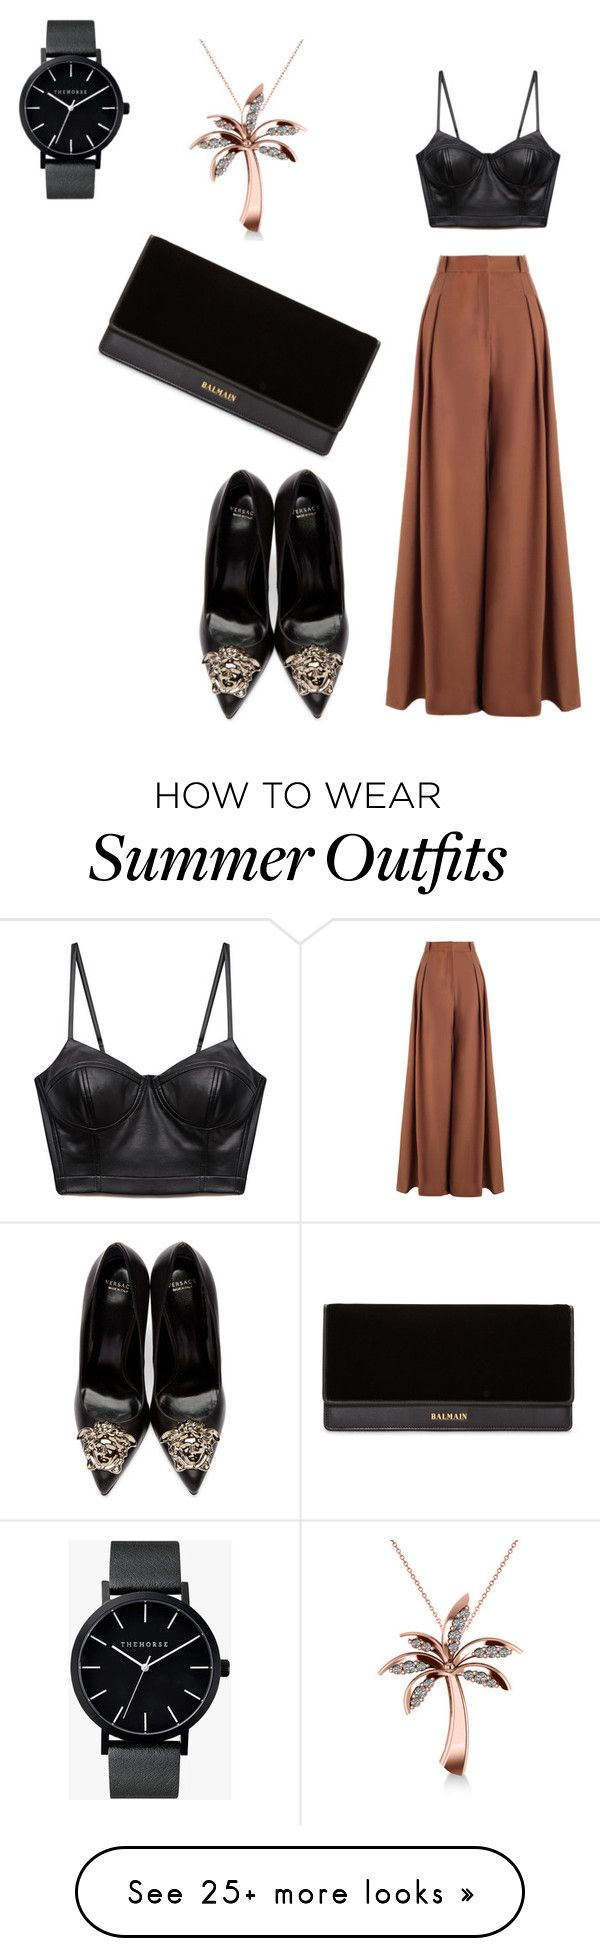 """When A little leather make the outfit sing"" by staciapandalover on Po..."